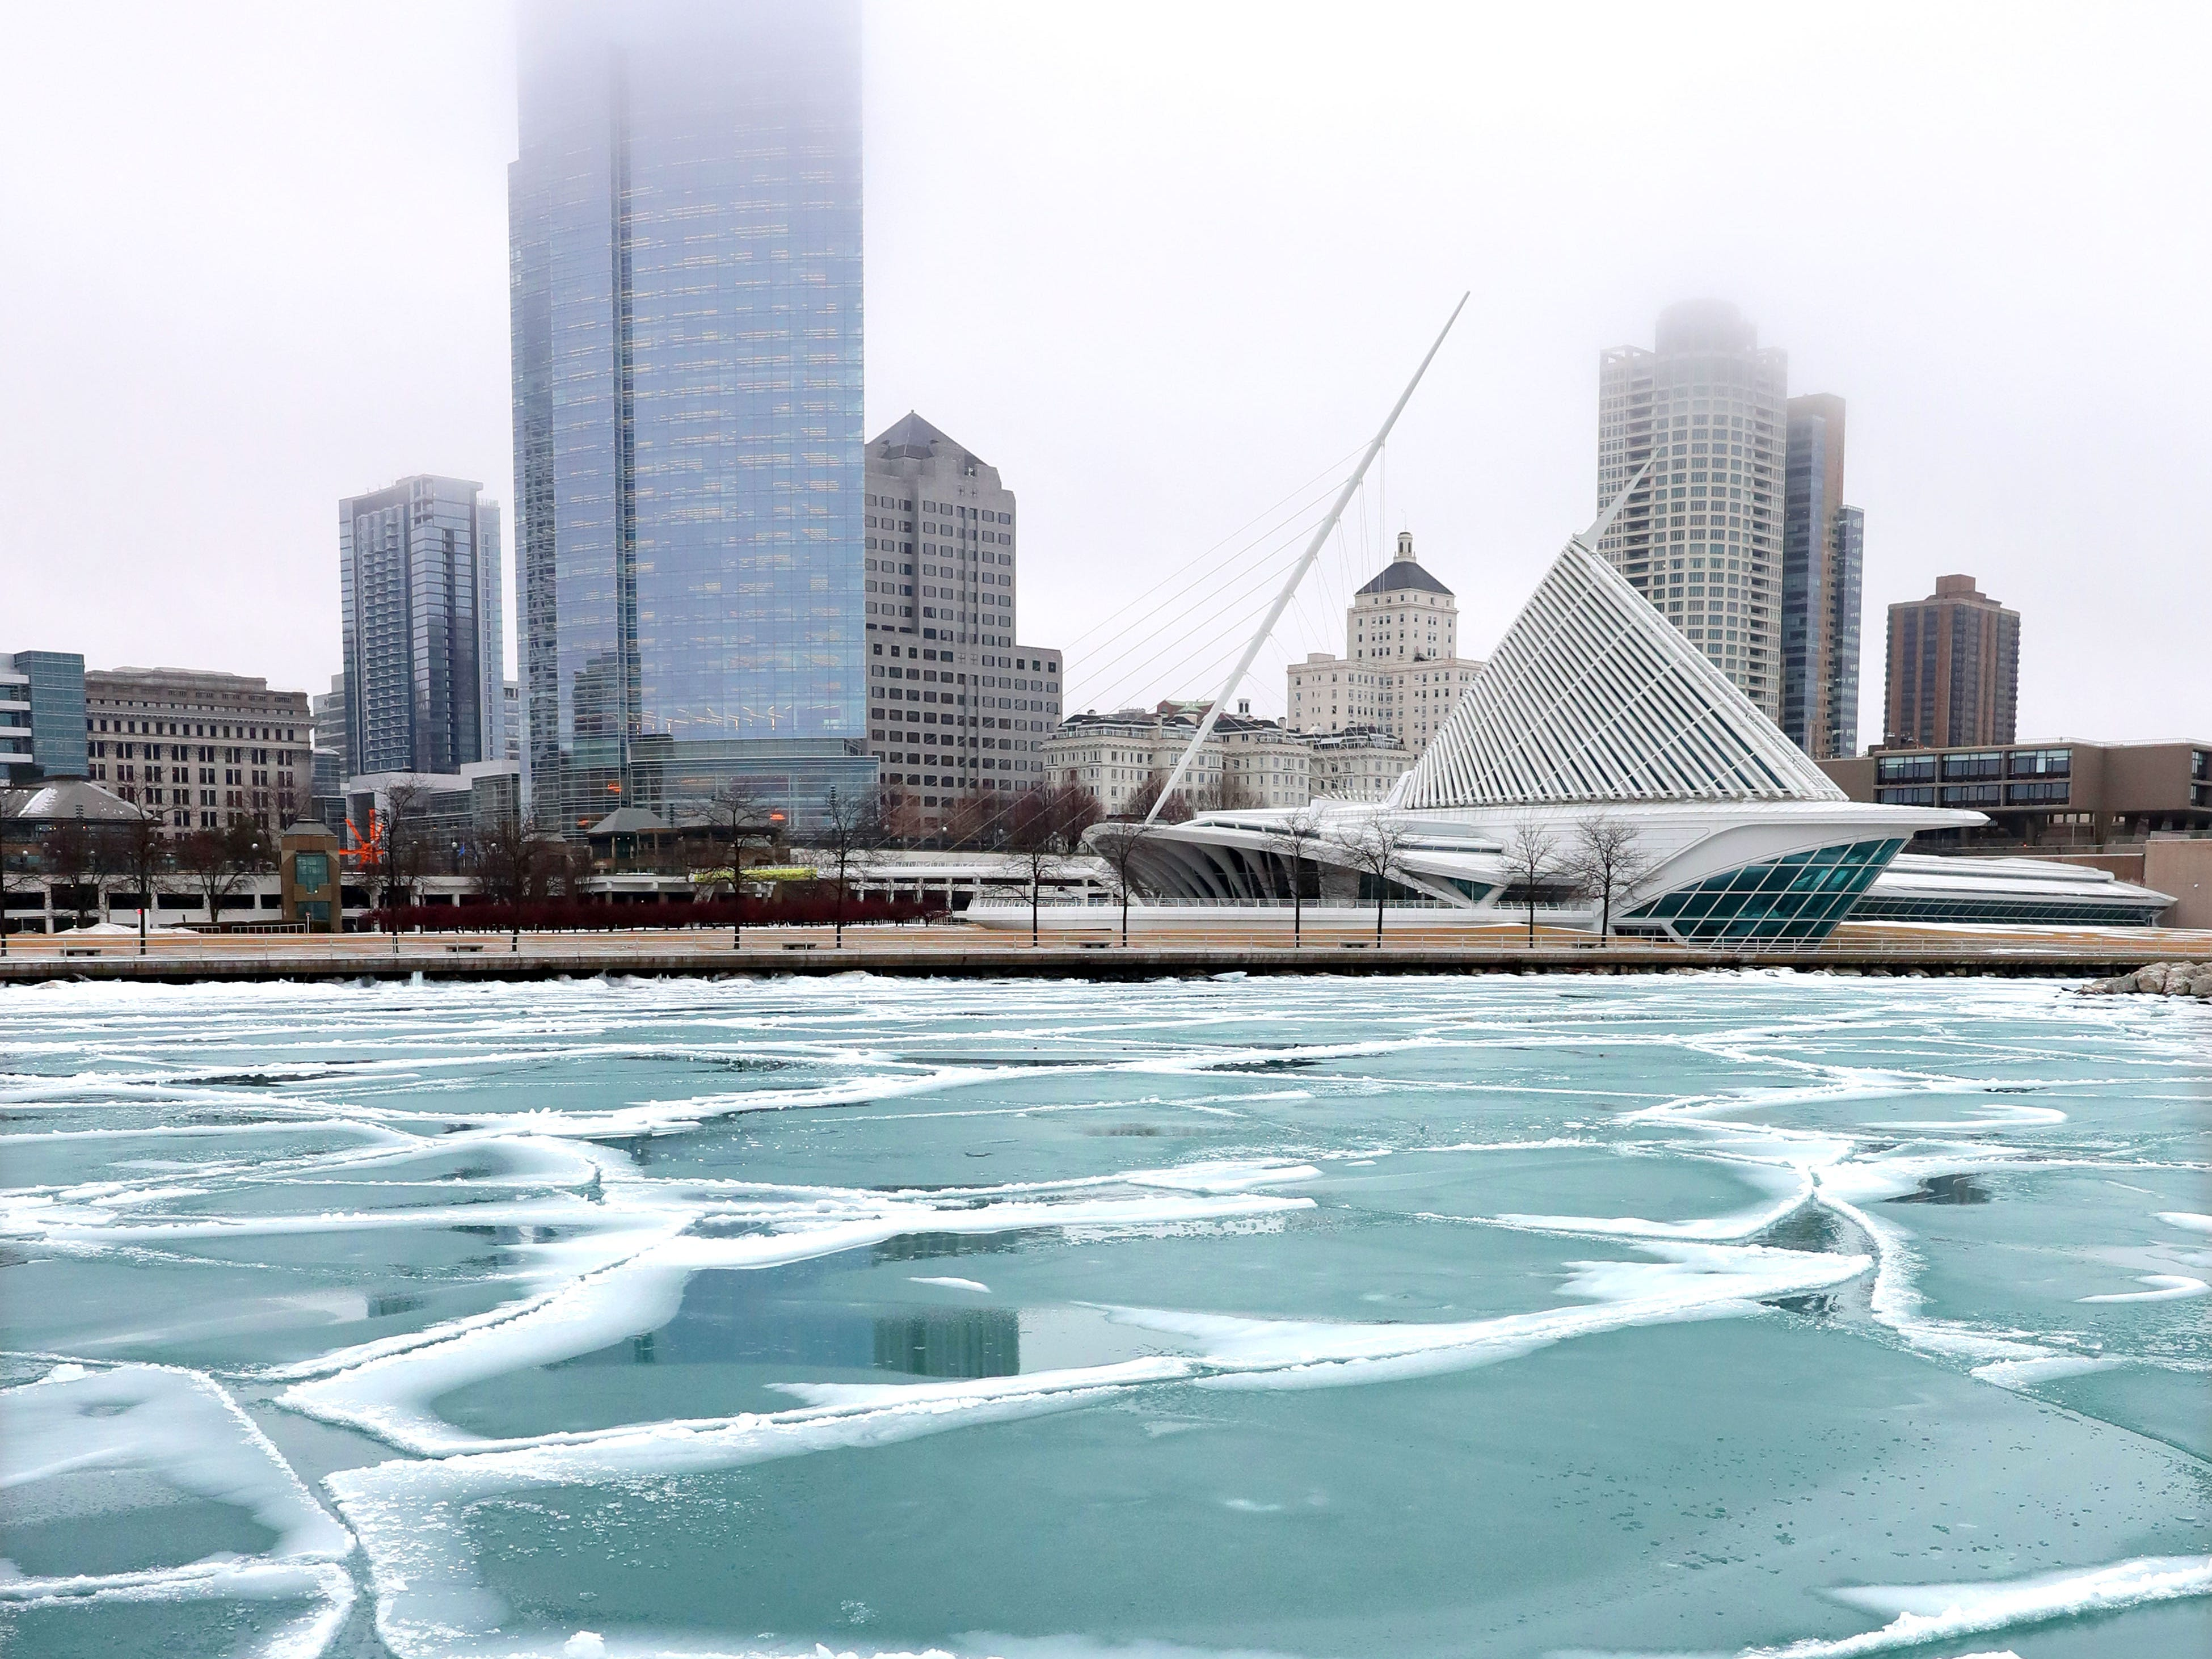 Chunks of ice float in the Lake Michigan bay area near the Milwaukee Art Museum in Milwaukee on Wednesday, Feb. 6, 2019. While freezing rain made roads and sidewalks a slushy mess Wednesday, the Milwaukee metro area is in for another round of icy weather that is expected to make the commutes hazardous Wednesday night and Thursday morning. A winter weather advisory for Ozaukee and Washington counties as well as the Madison area has been issued for 6 p.m. Wednesday to 6 p.m Thursday. Total snow accumulations of up to 2 inches and ice accumulations of two-tenths to three-tenths of an inch are expected.